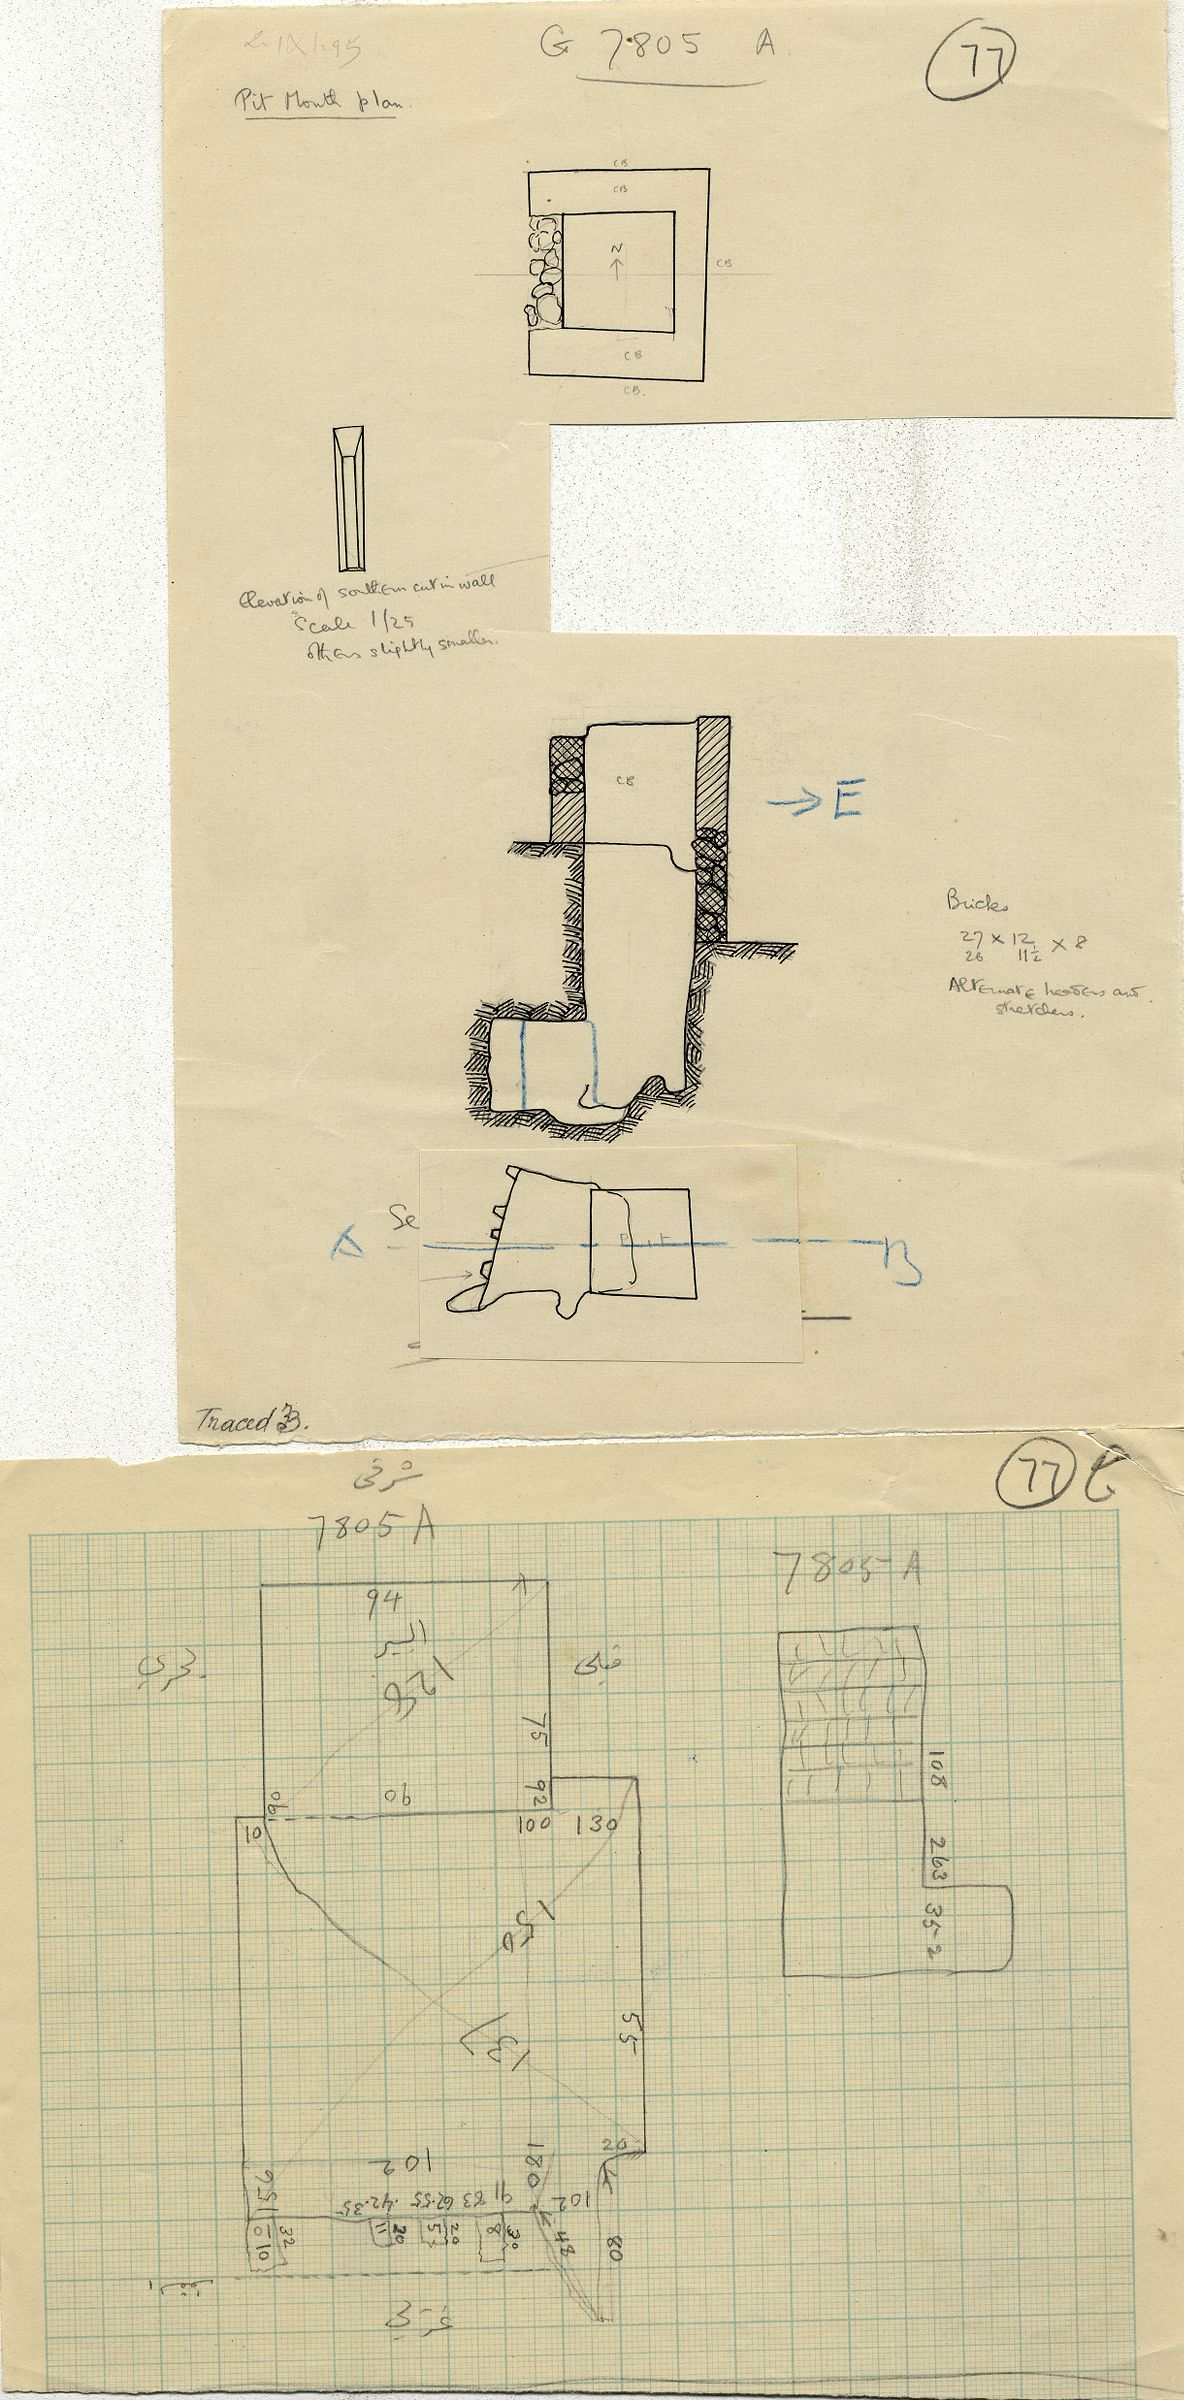 Maps and plans: G 7805, Shaft A